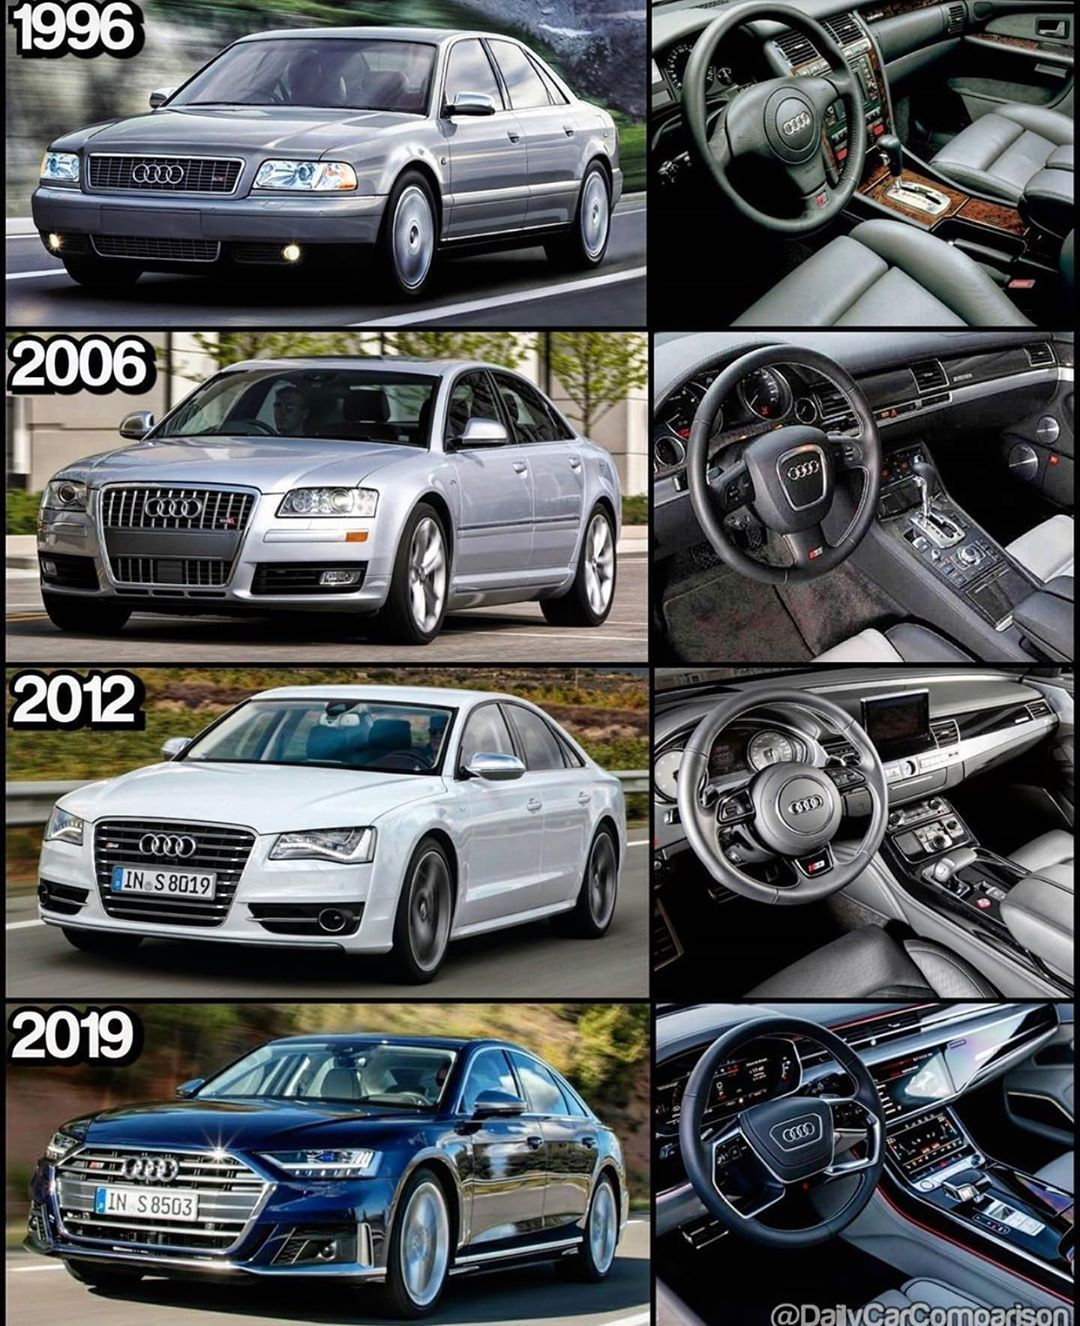 Only Audi On Instagram Audi S8 Evolution By Dailycarcomparison Partner All Of Europe Onlyaudi Audi Quattro Audia8l A8l Audi Audi A8 Volkswagen